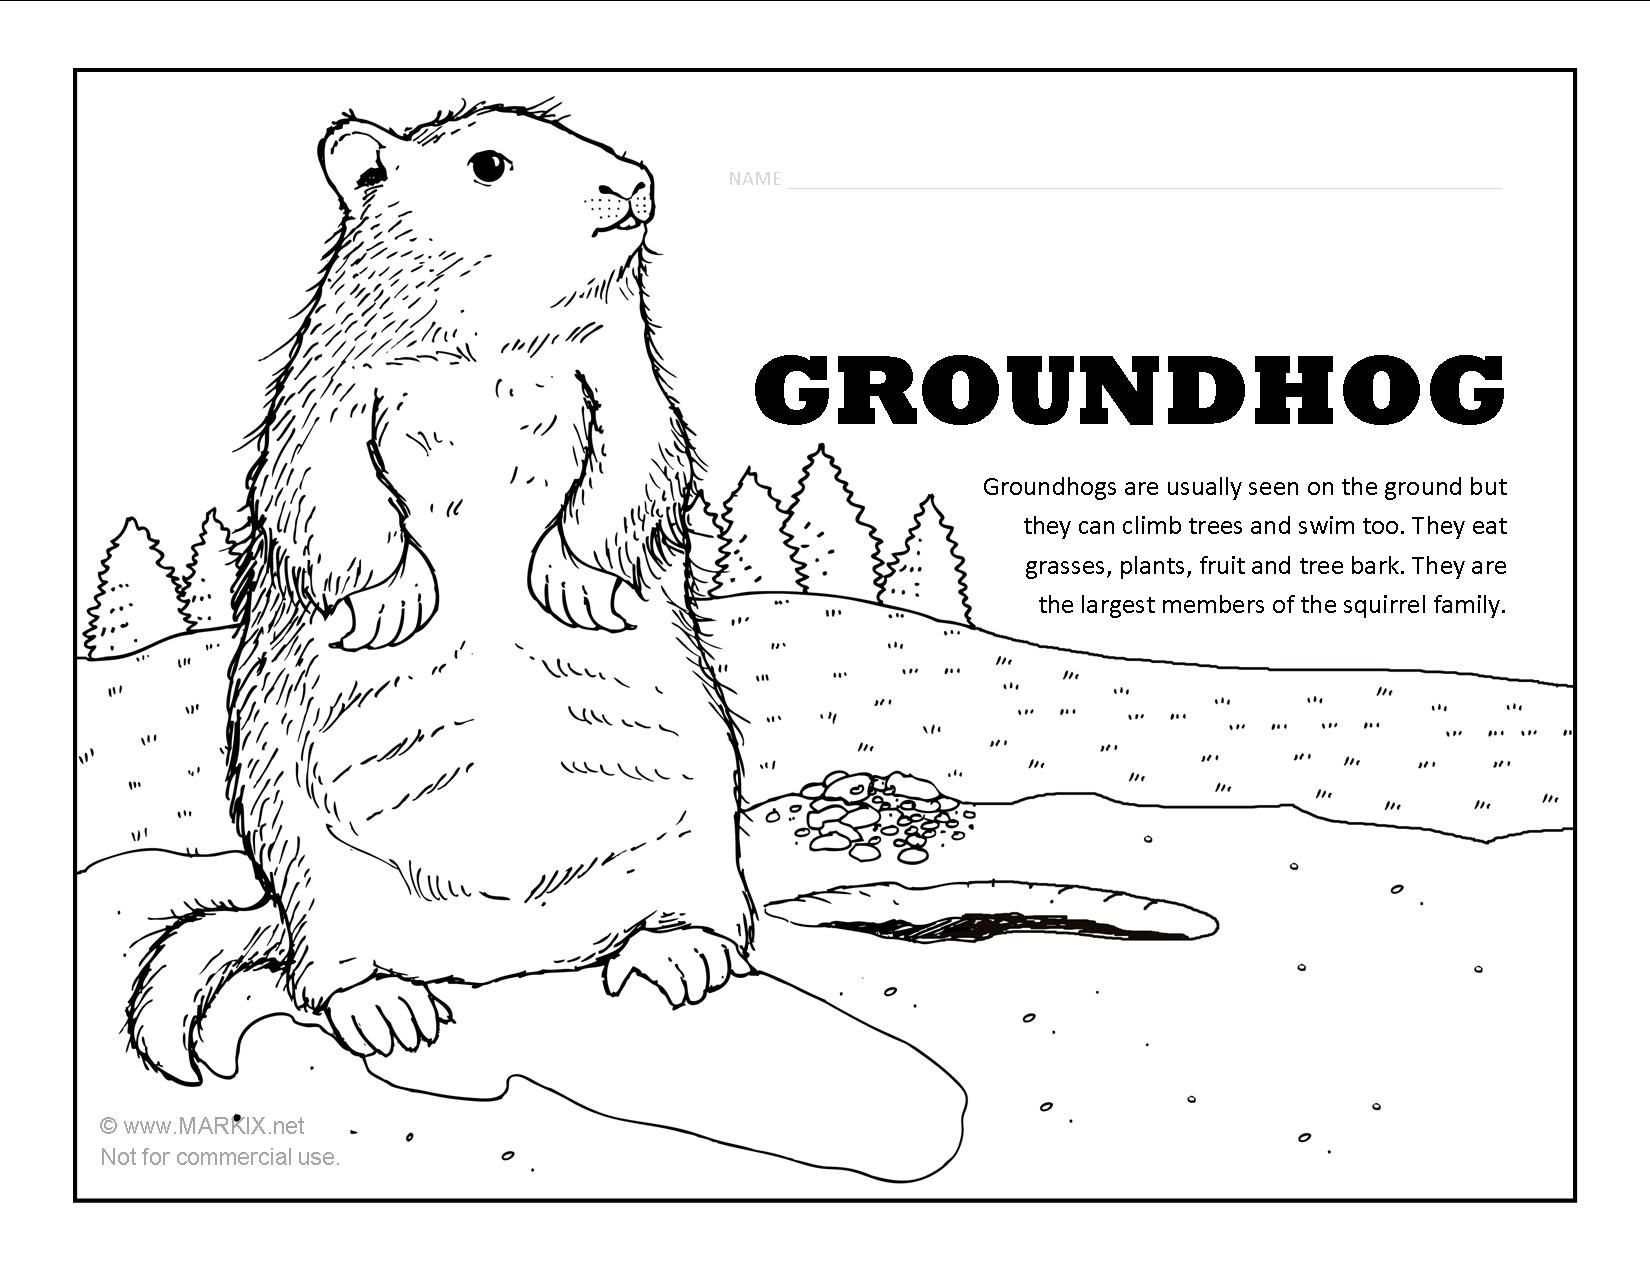 Groundhog Coloring Page Coloring Pages Happy Groundhog Day Groundhog